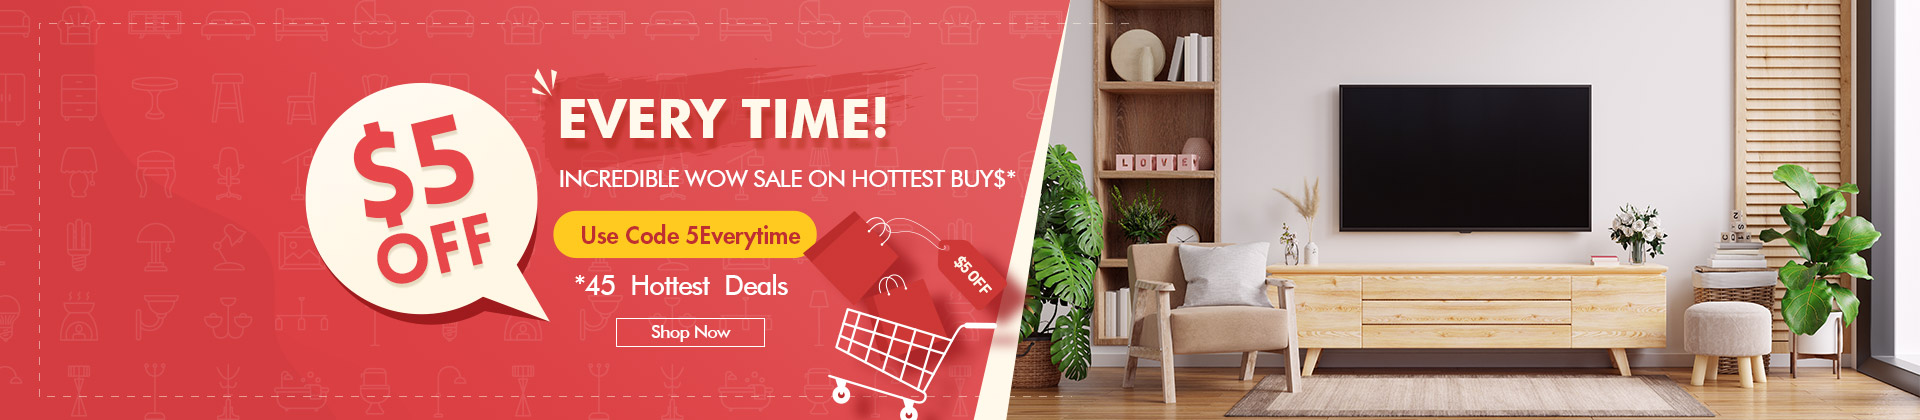 EVERY TIME INCREDIBLE WOW SALE ON HOTTEST BUY$